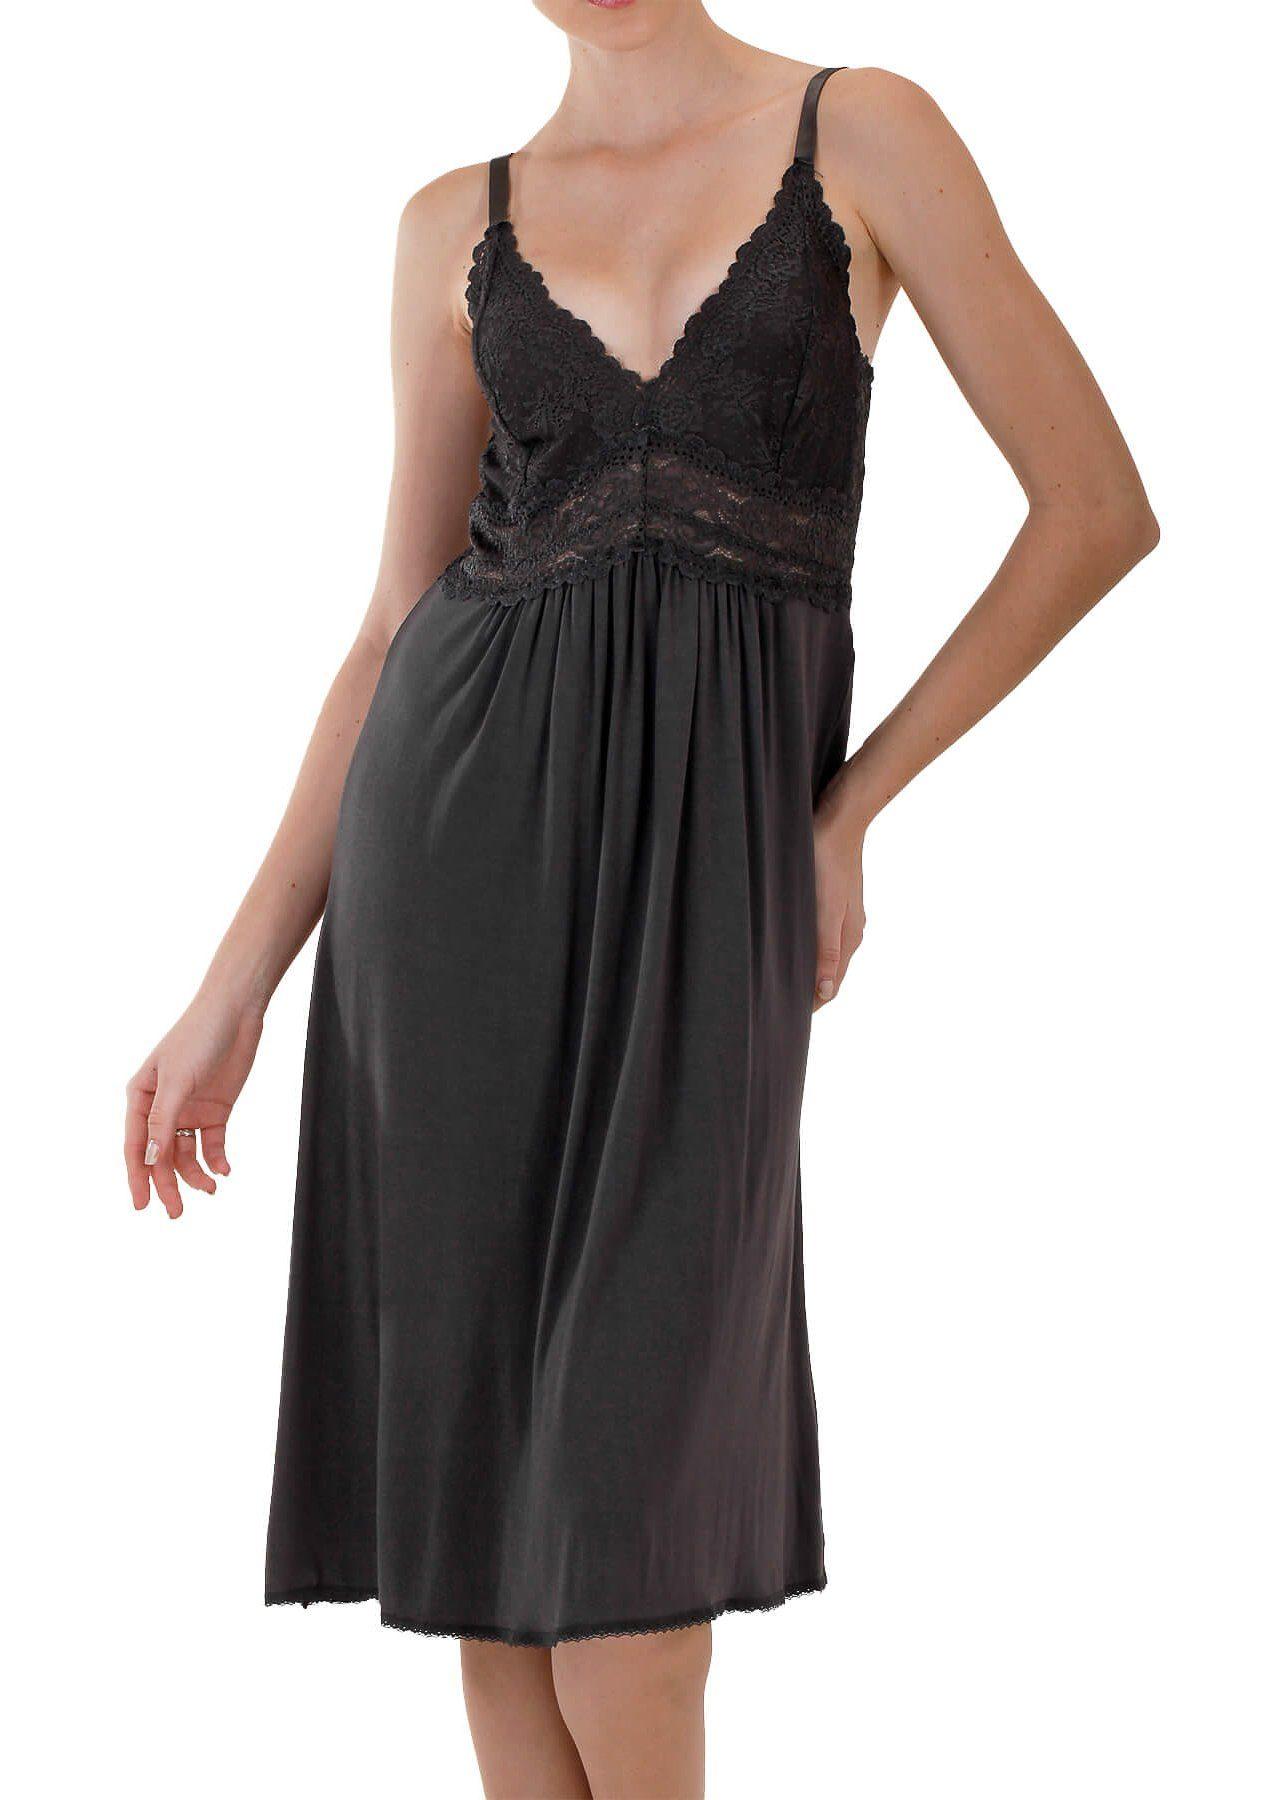 Bliss Gown #21905 in Black